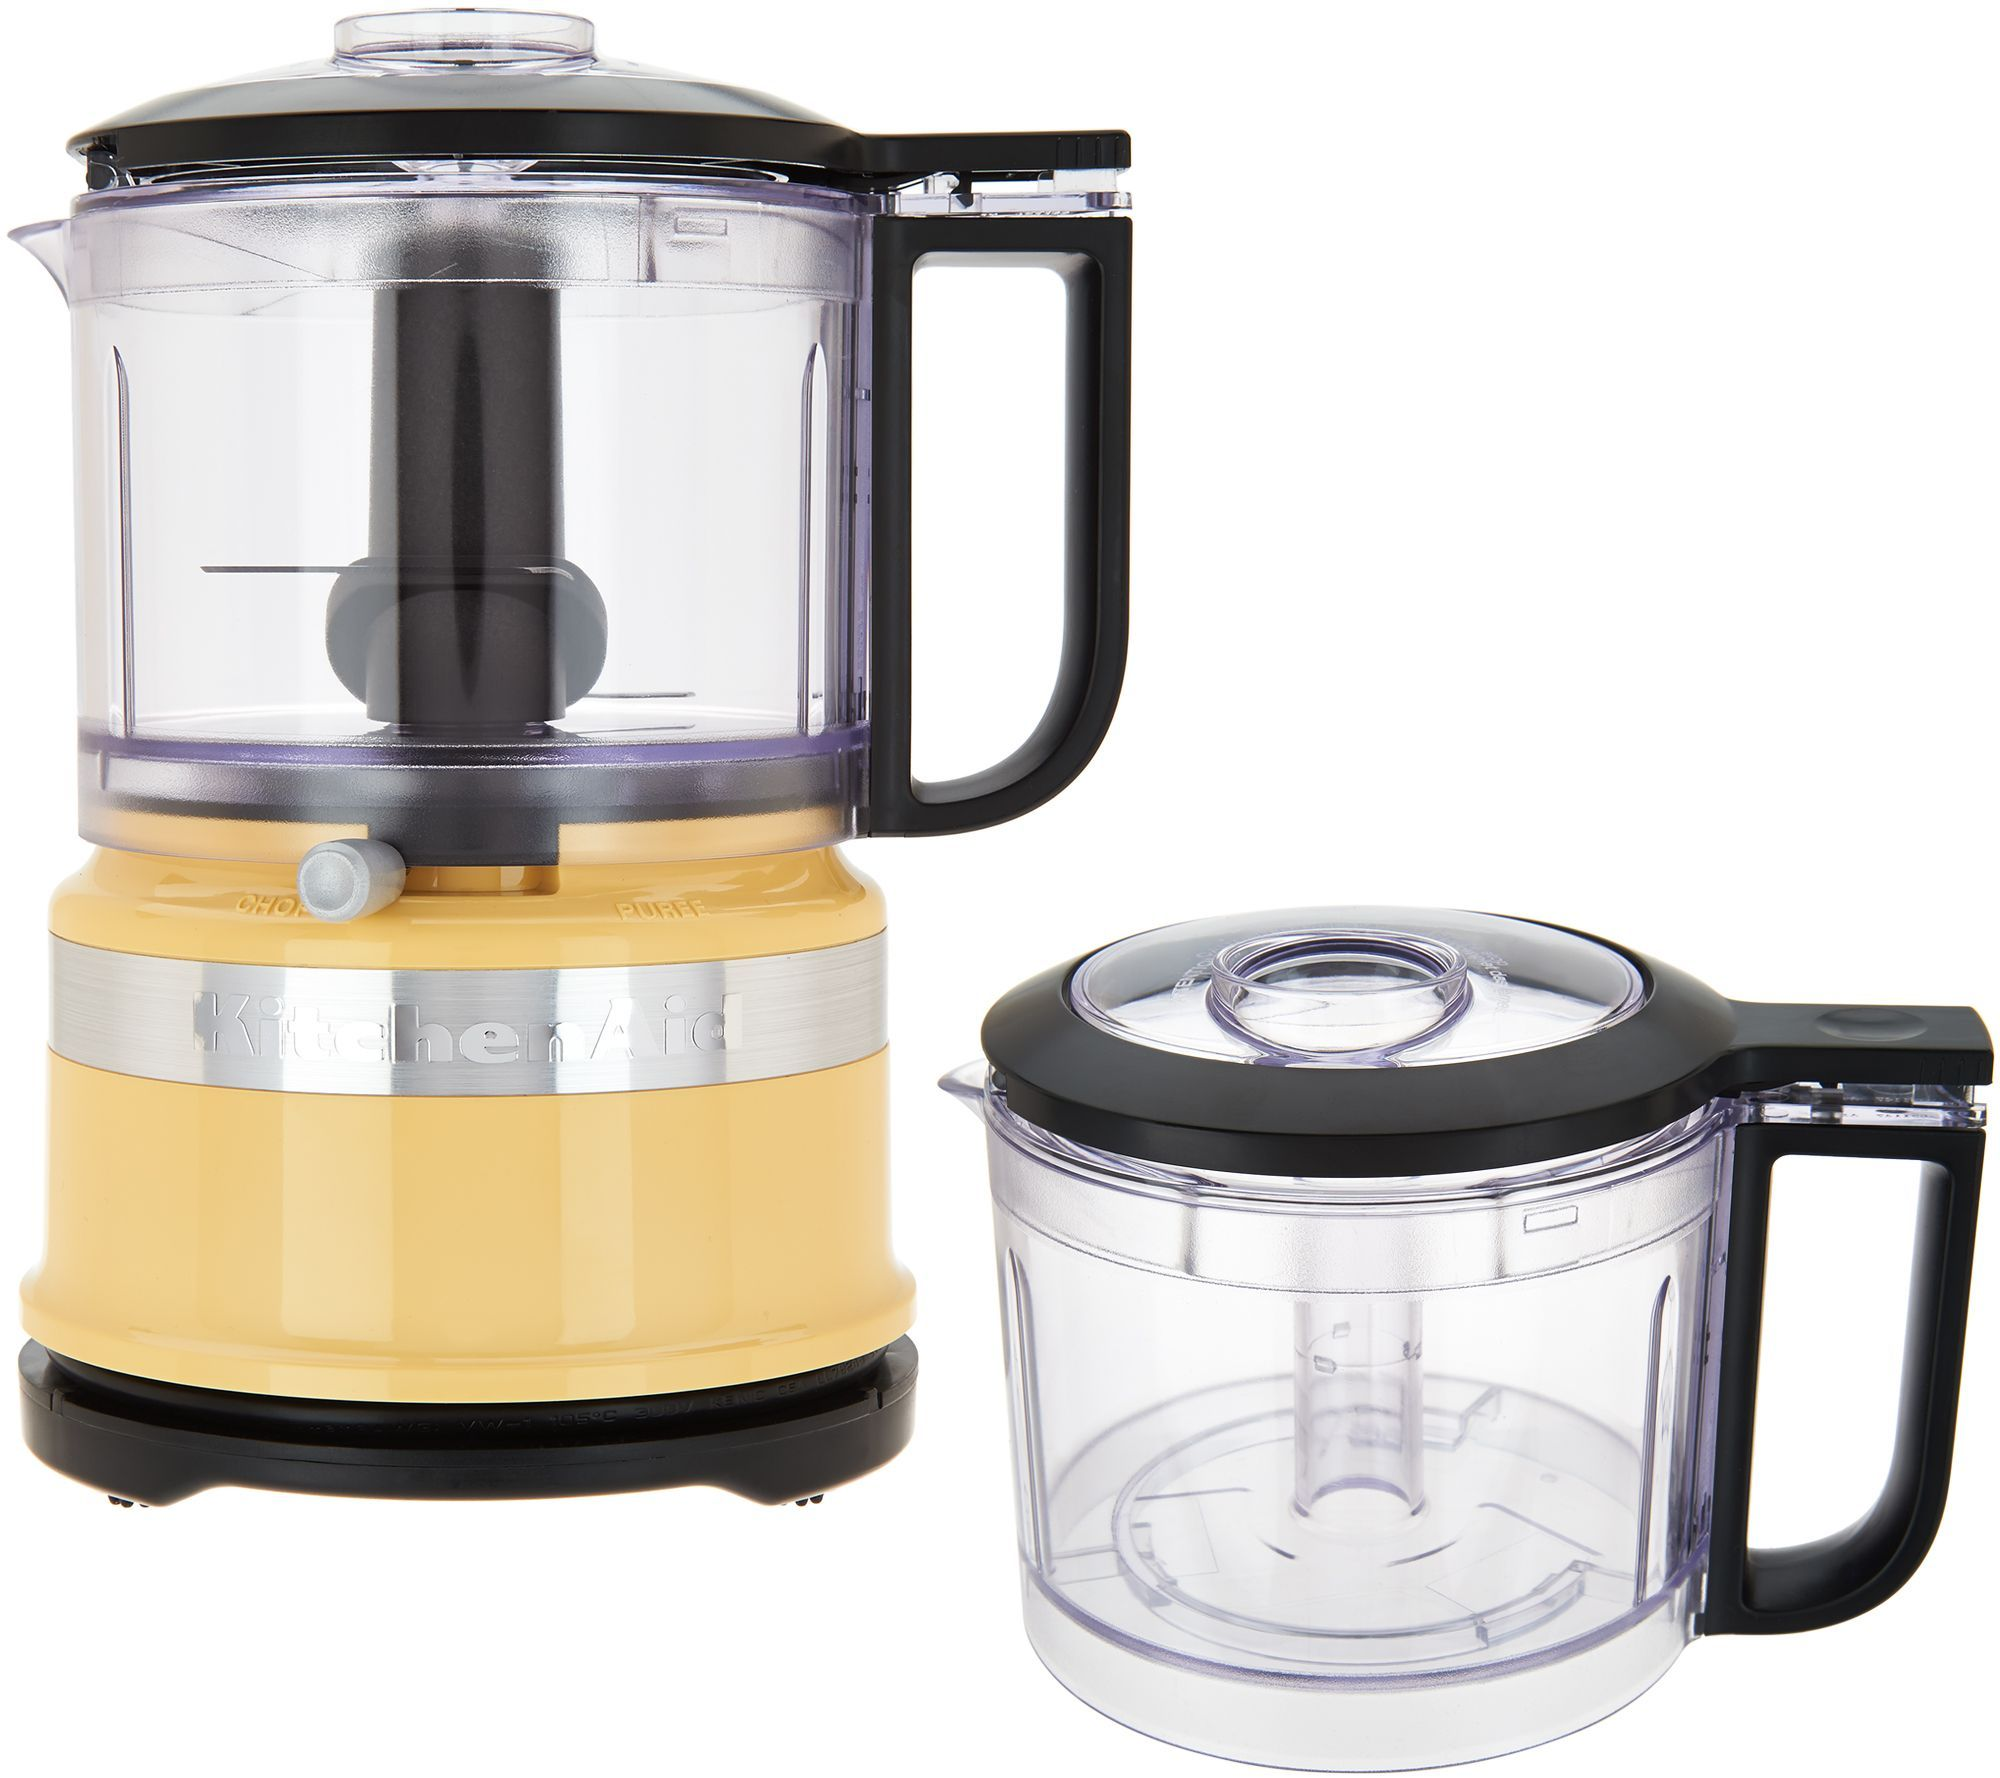 Kitchenaid 35cup 2speed chopper with extra